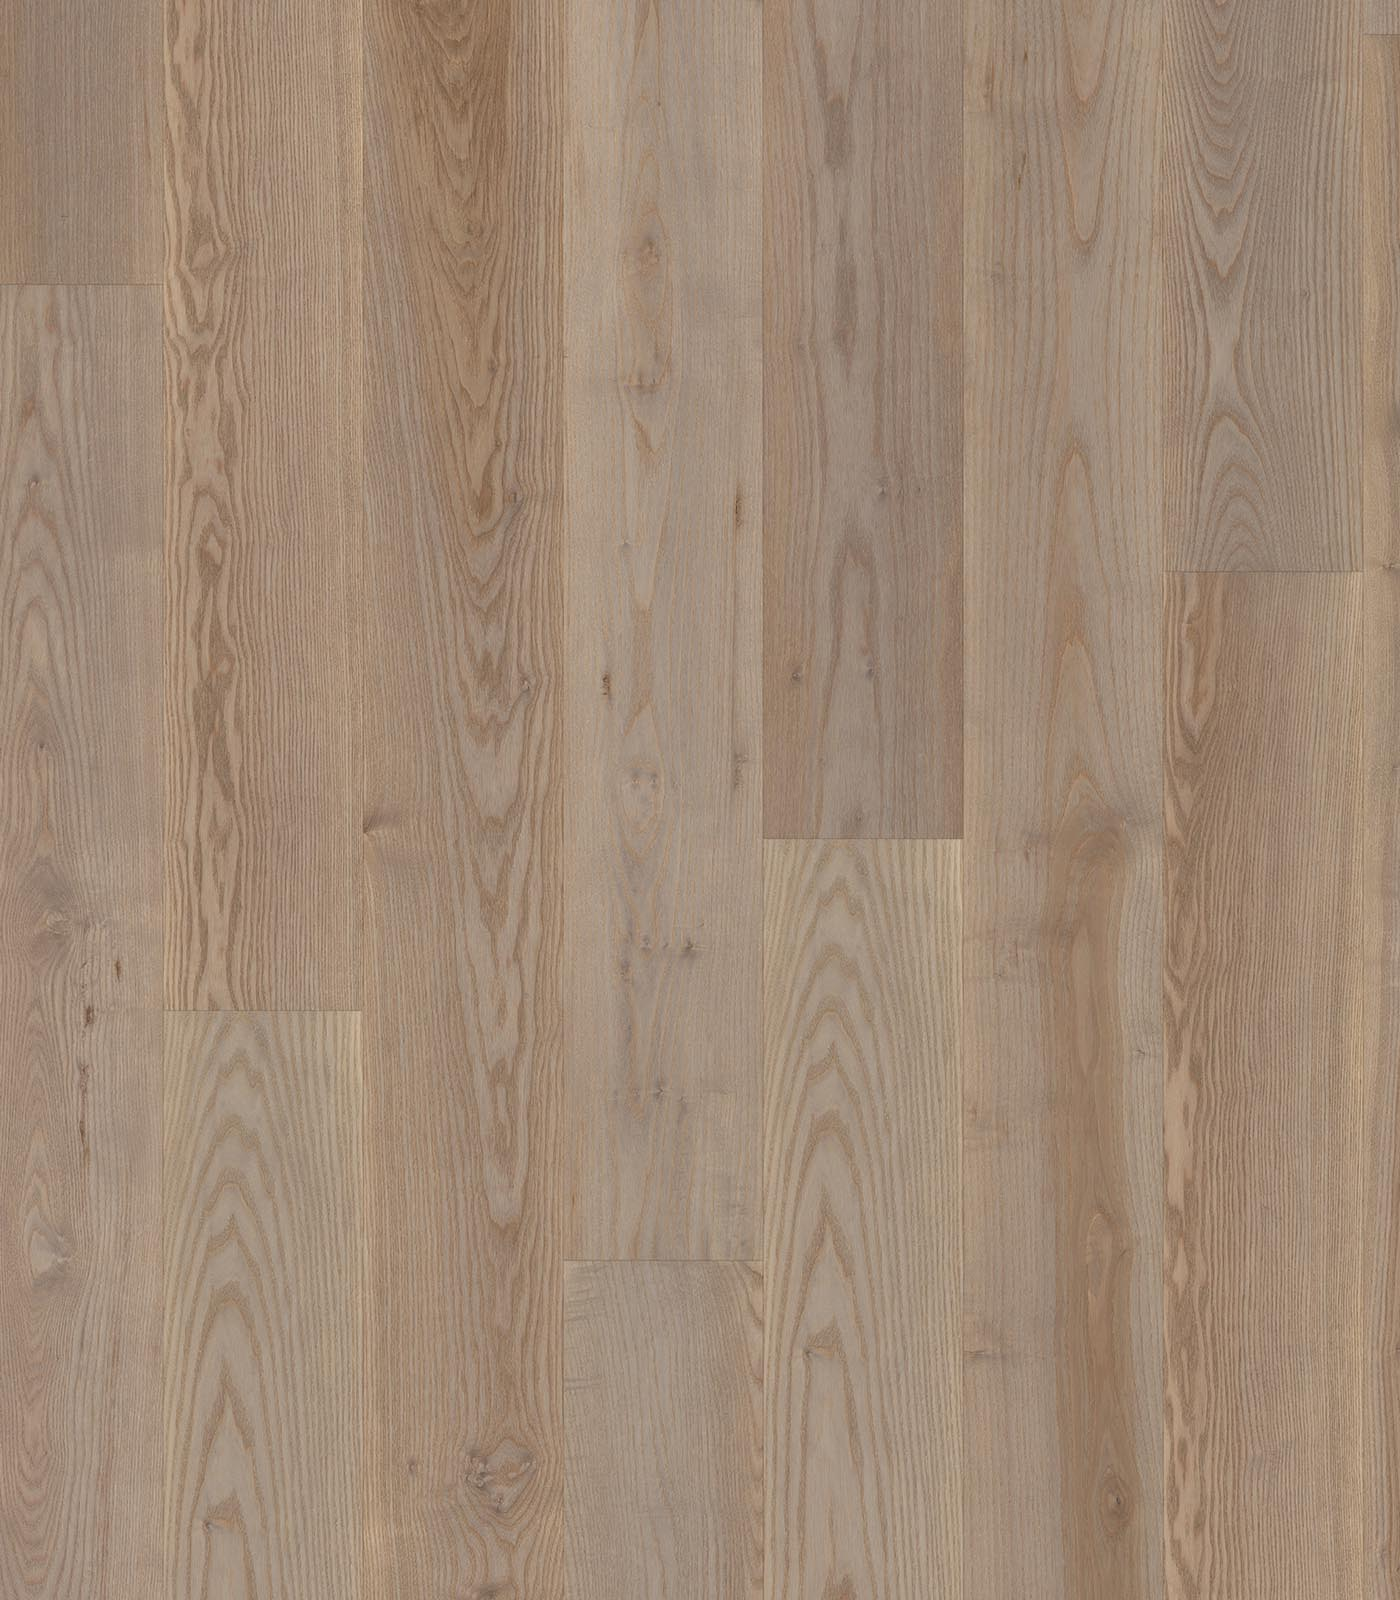 Amsterdam - After Oak Collection - European Ash Floor - Flat